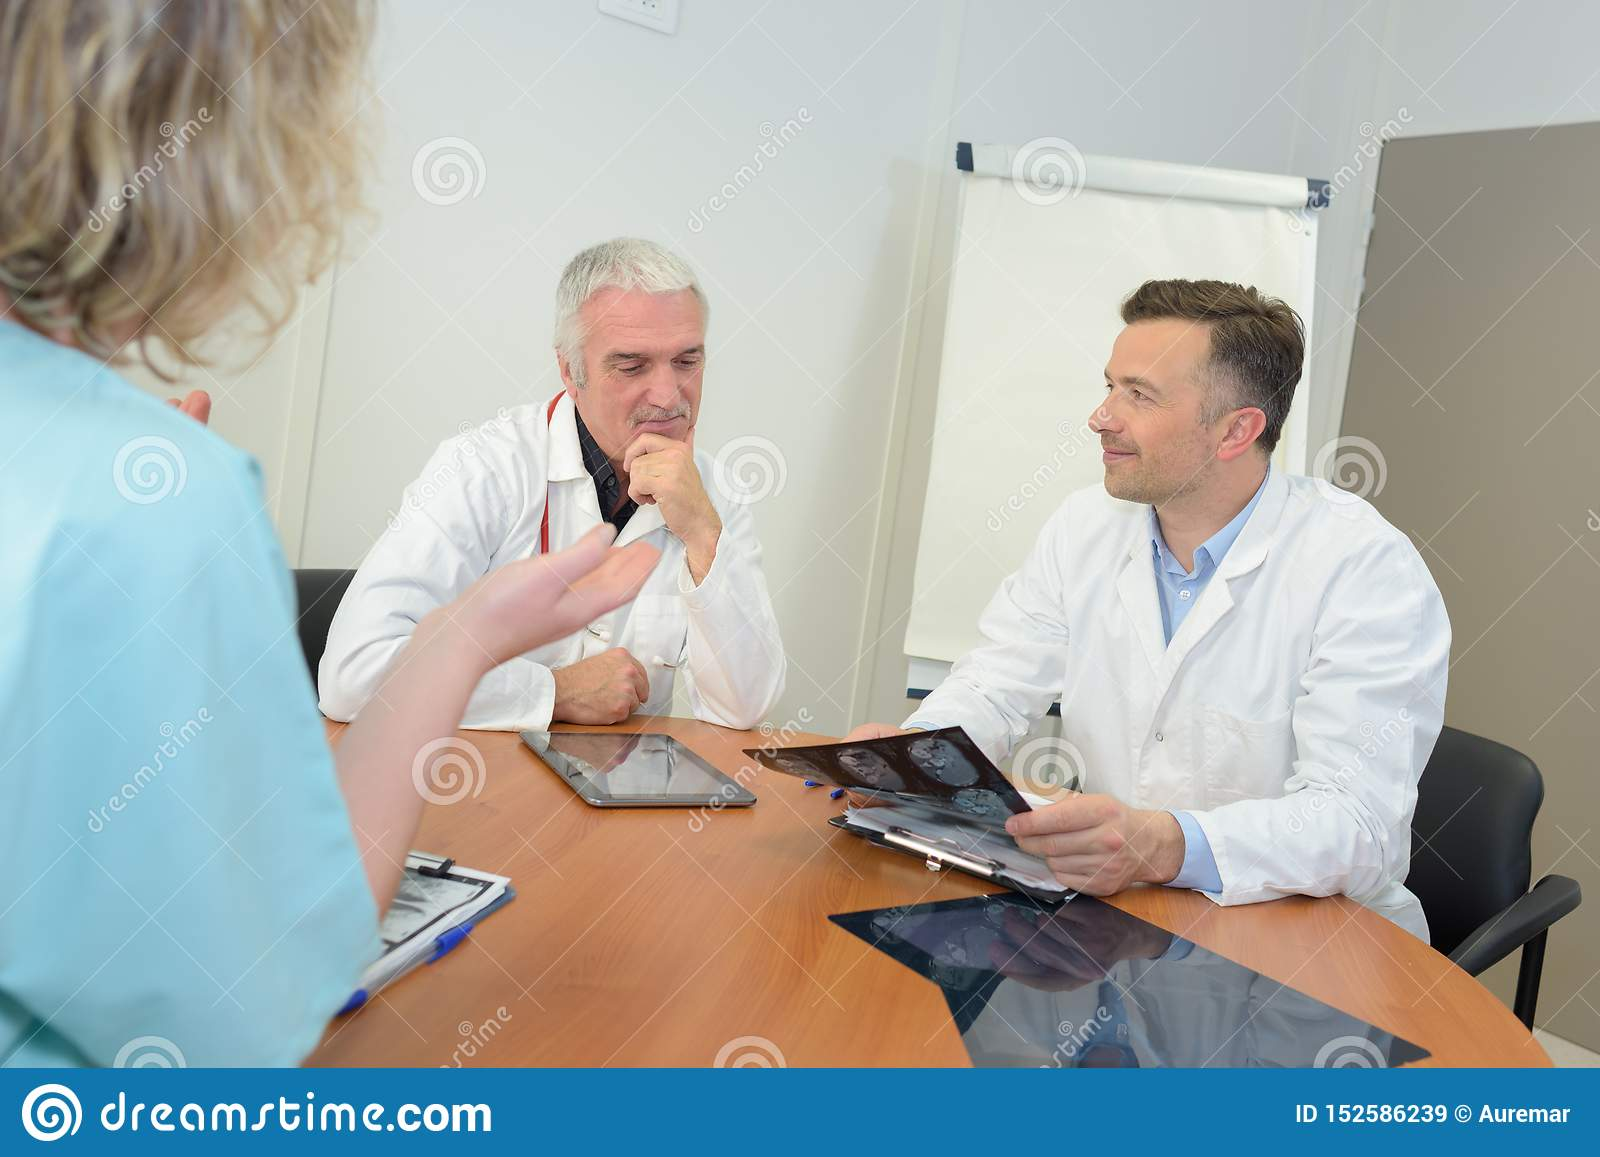 Medical workers dicussing xray results